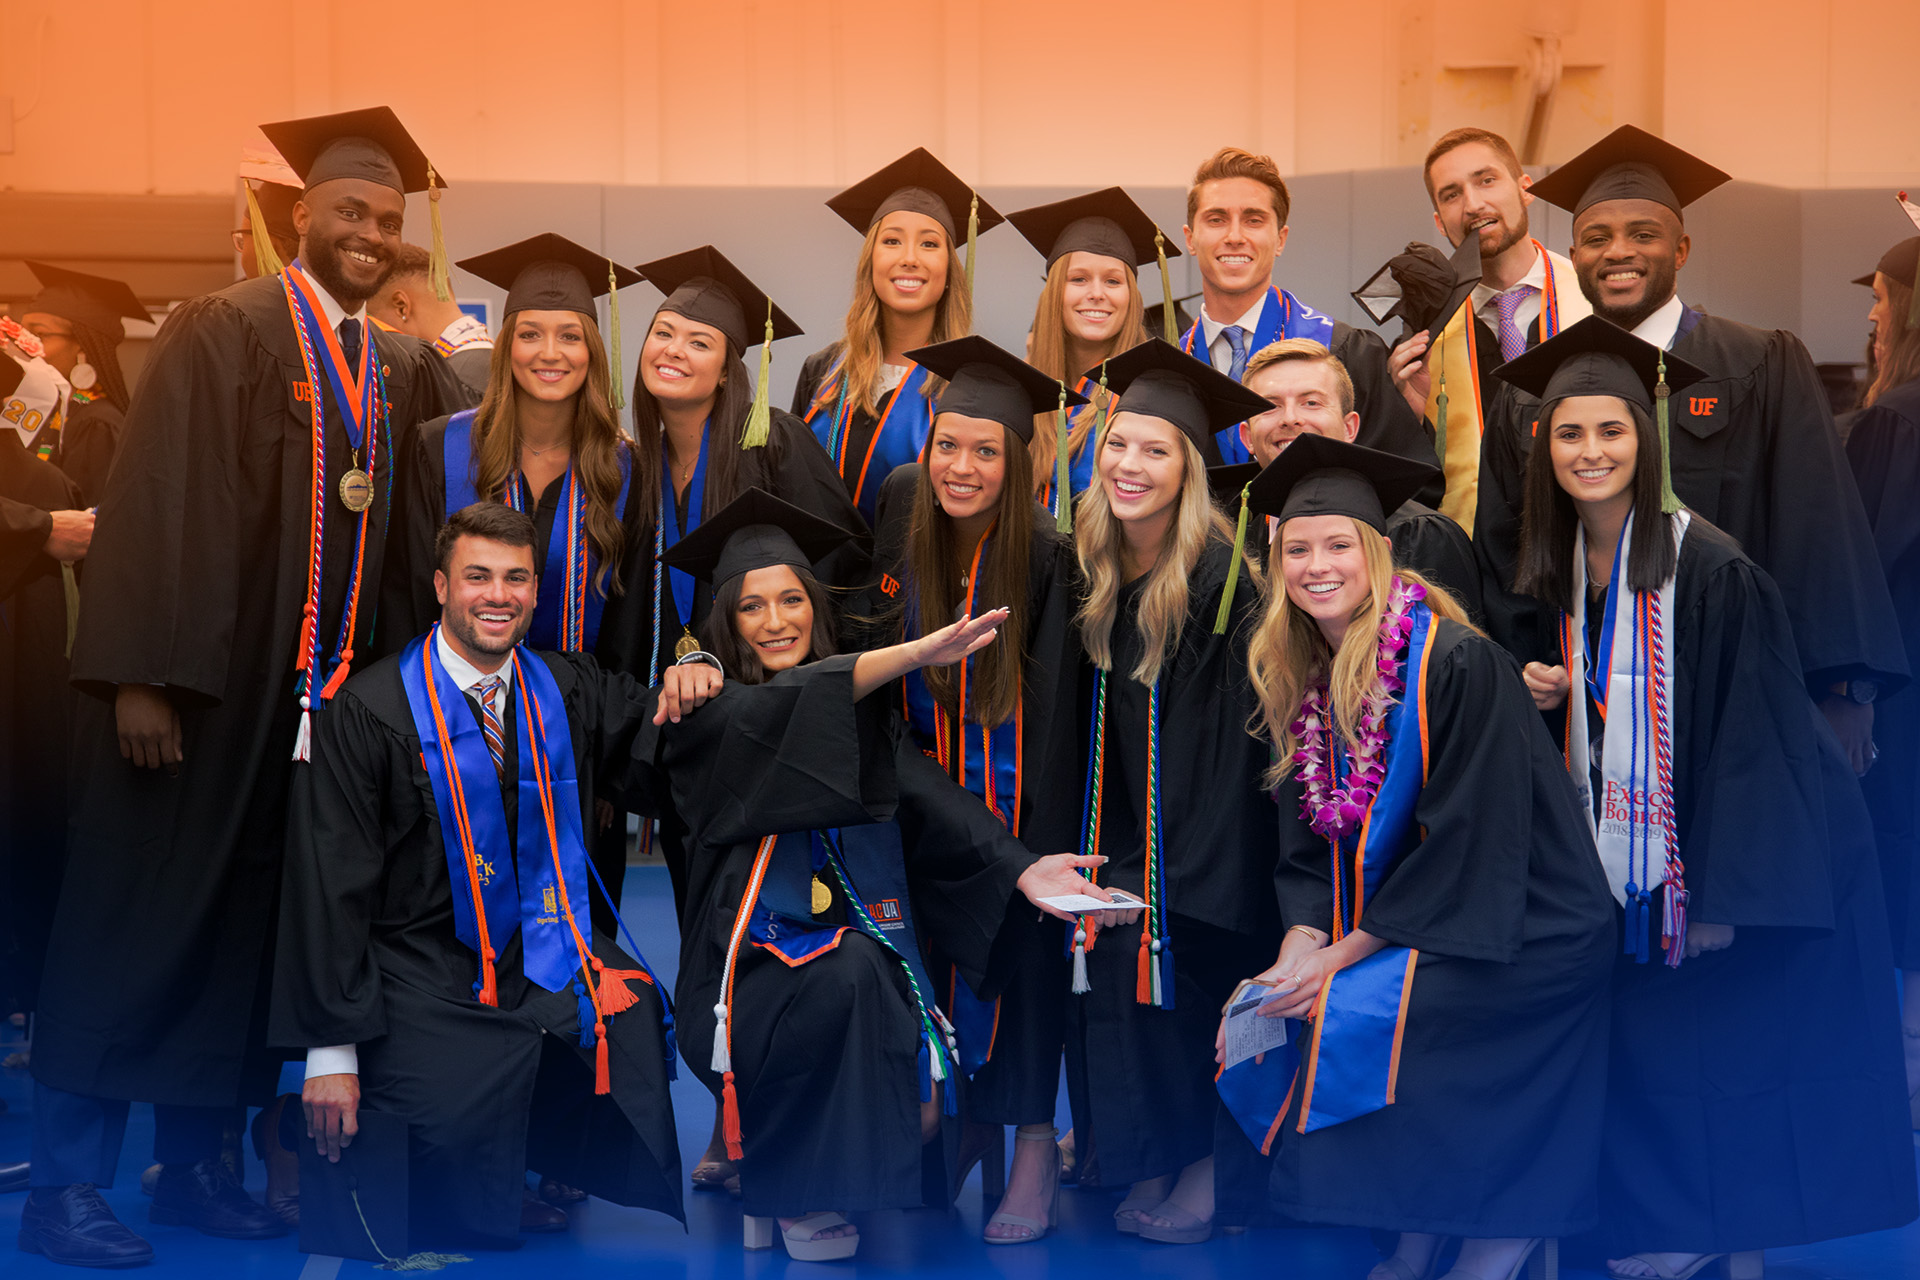 Uf Academic Calendar 2019 College of Health and Human Performance